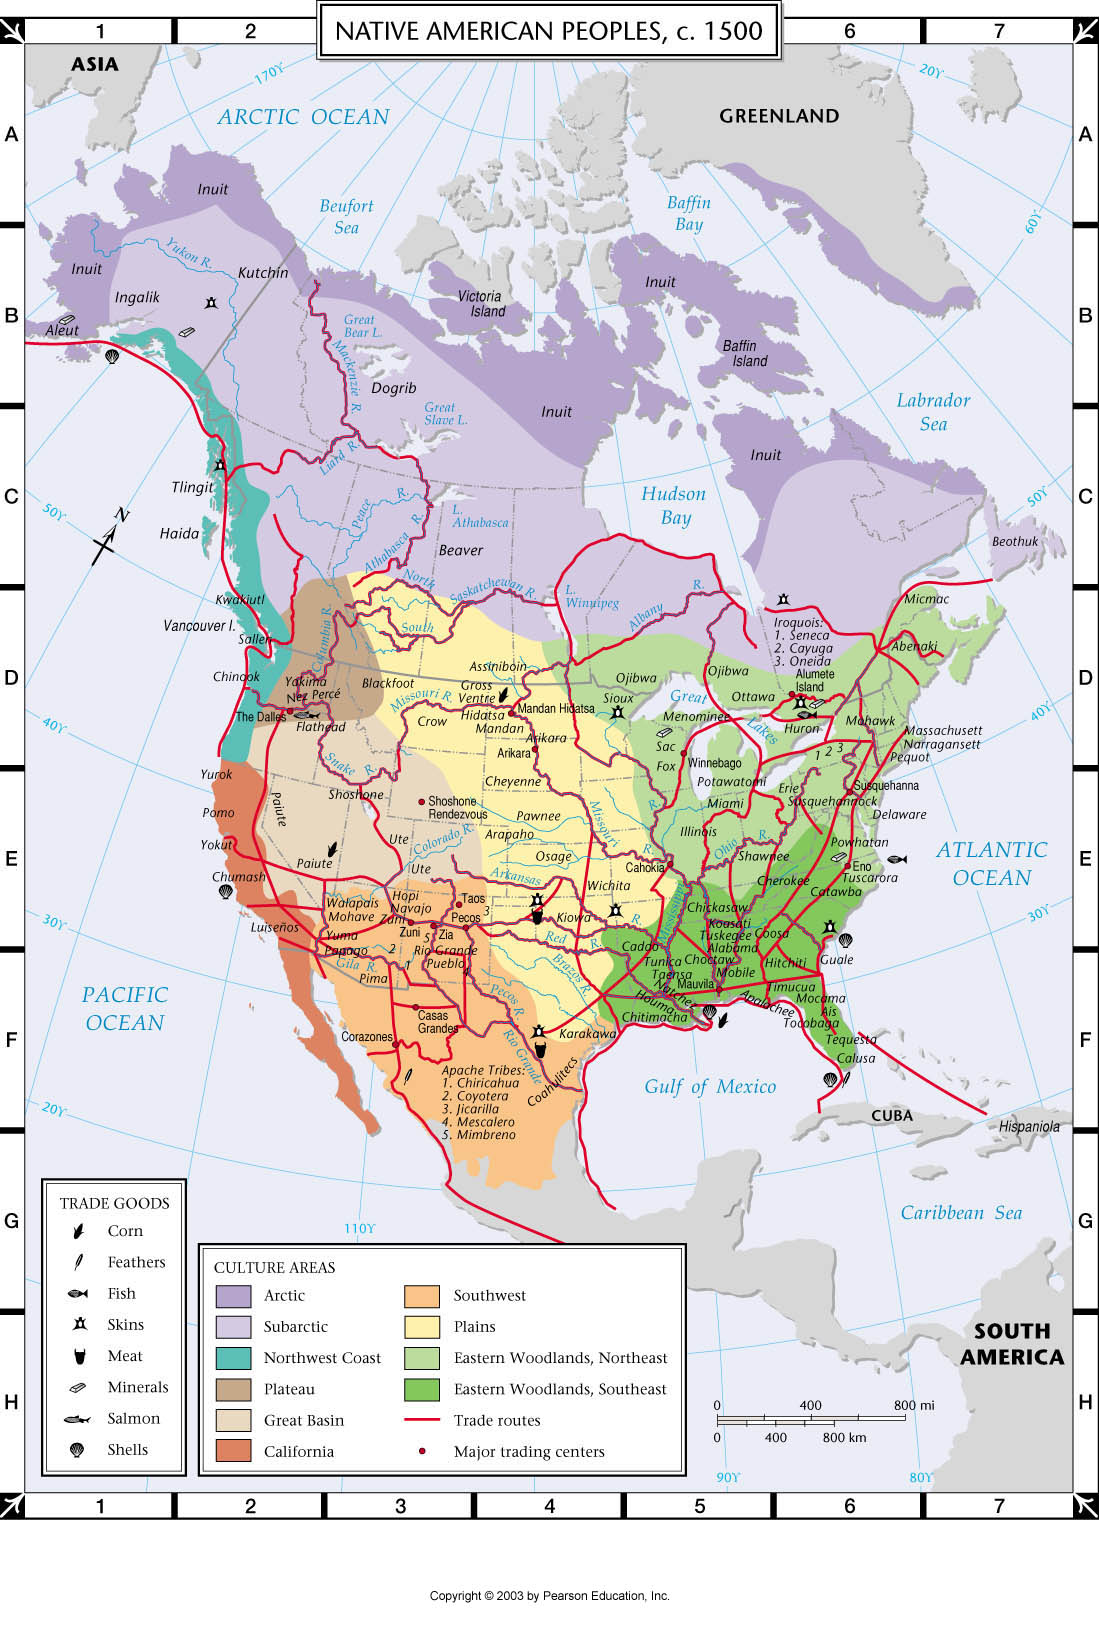 Atlas Map: Native American Peoples, c. 1500